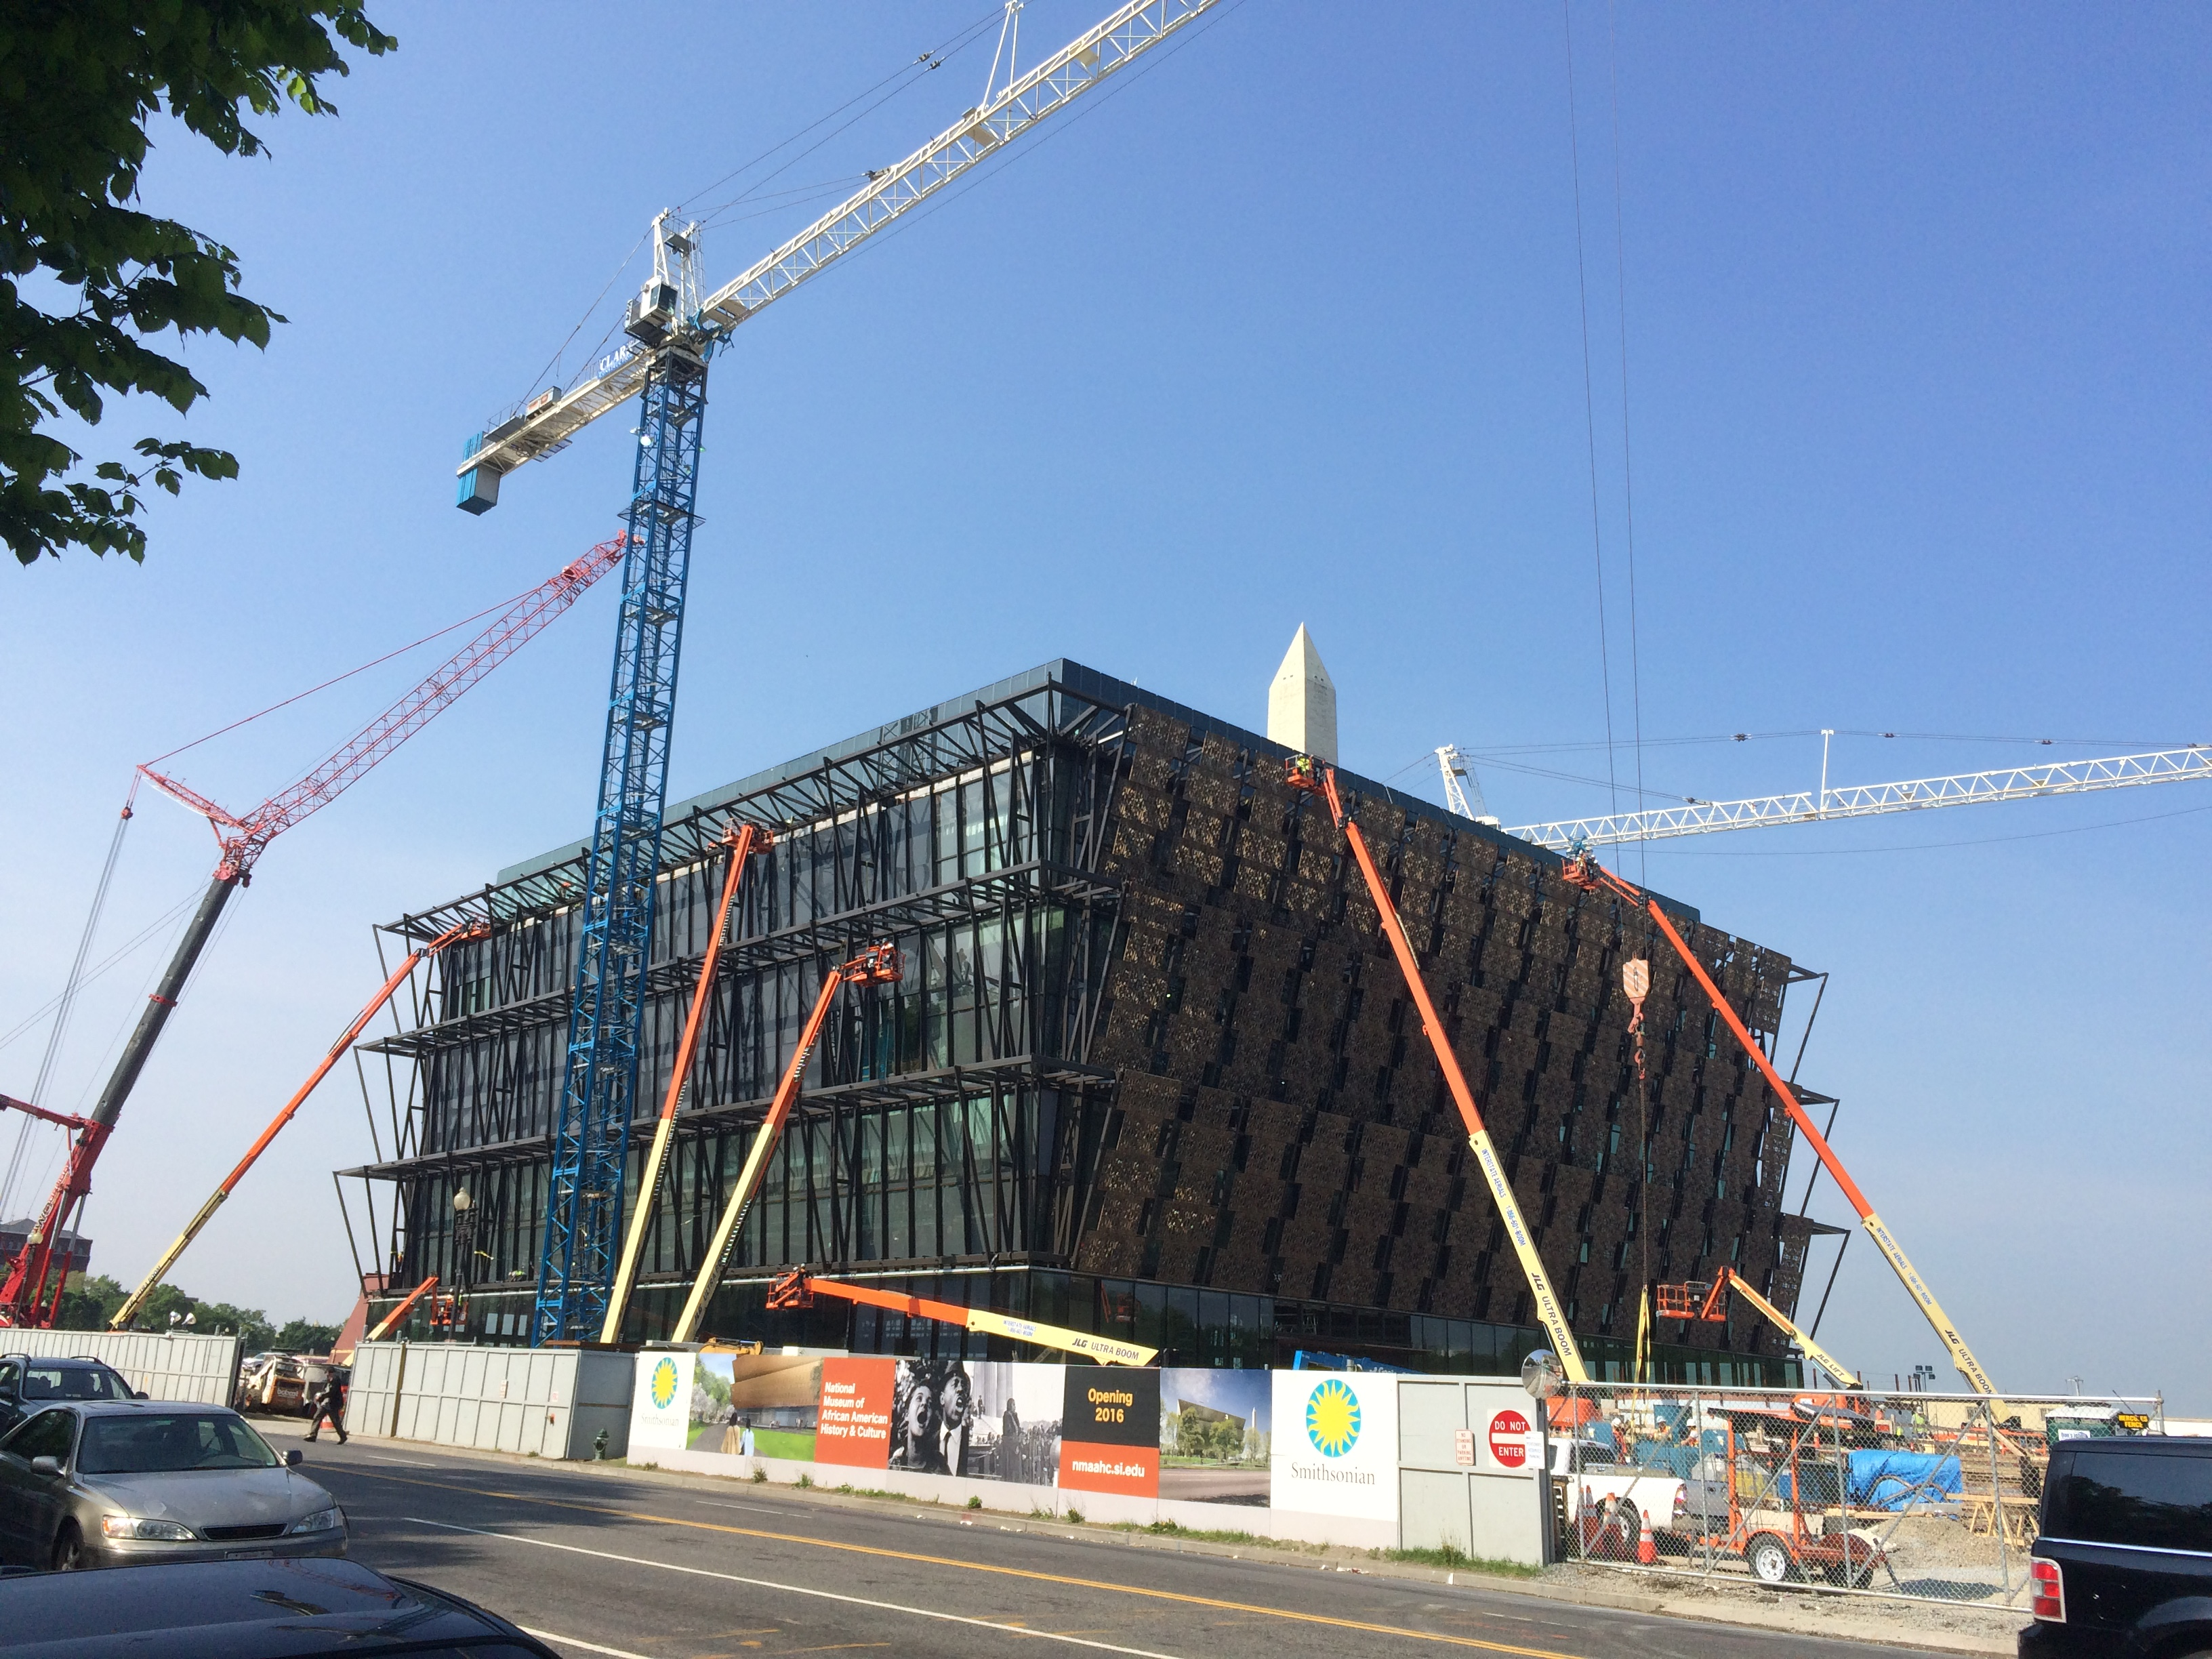 New museum on National Mall is 75 percent complete